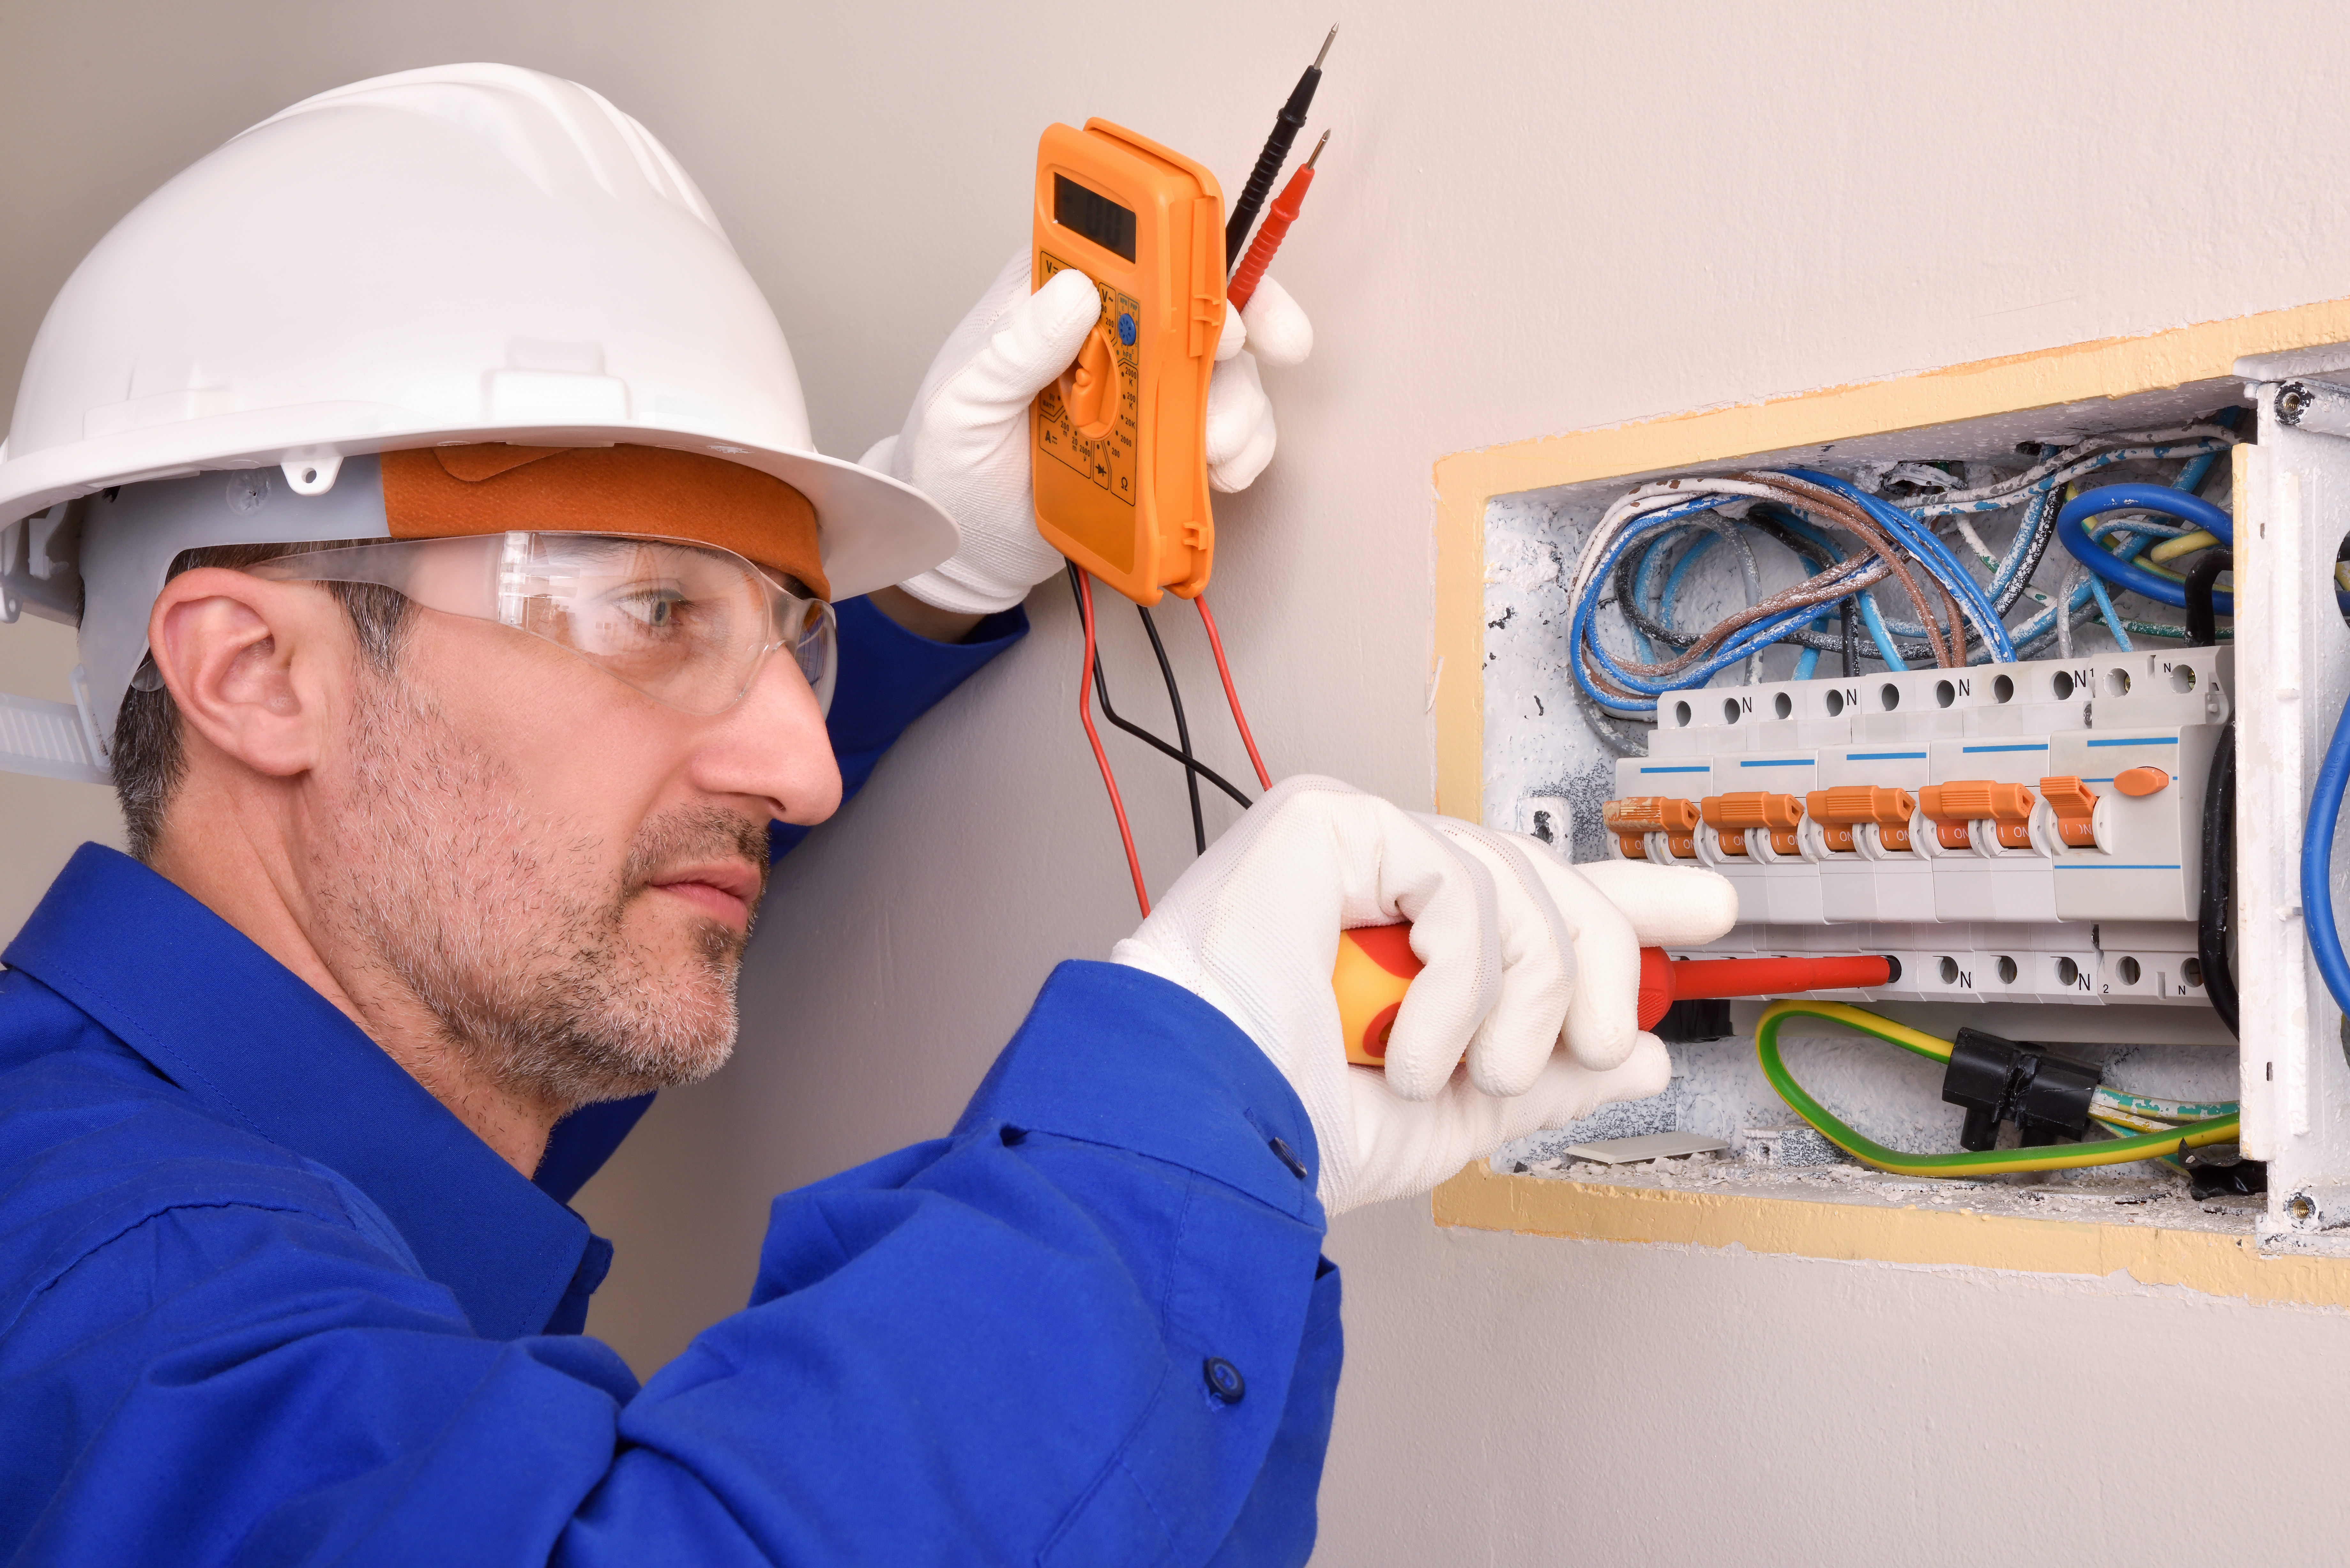 Electrical installer housing working in an electrical panel of house